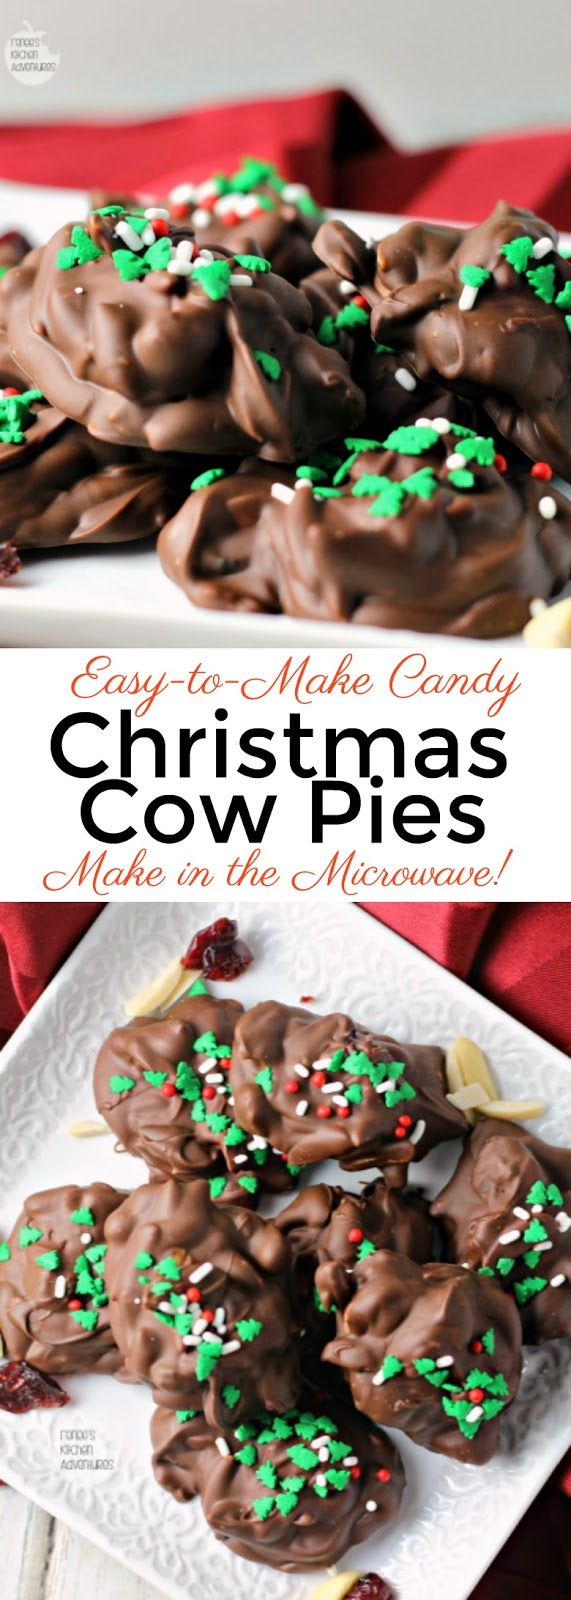 Christmas Cow Pies | Renee's Kitchen Adventures- easy recipe for a Christmas inspired candy that you can make in only 2 steps! Easy-to-make fruit and nuts clusters topped with festive sprinkles make the perfect holiday gift from your kitchen! #candy #candymaking #easyrecipe